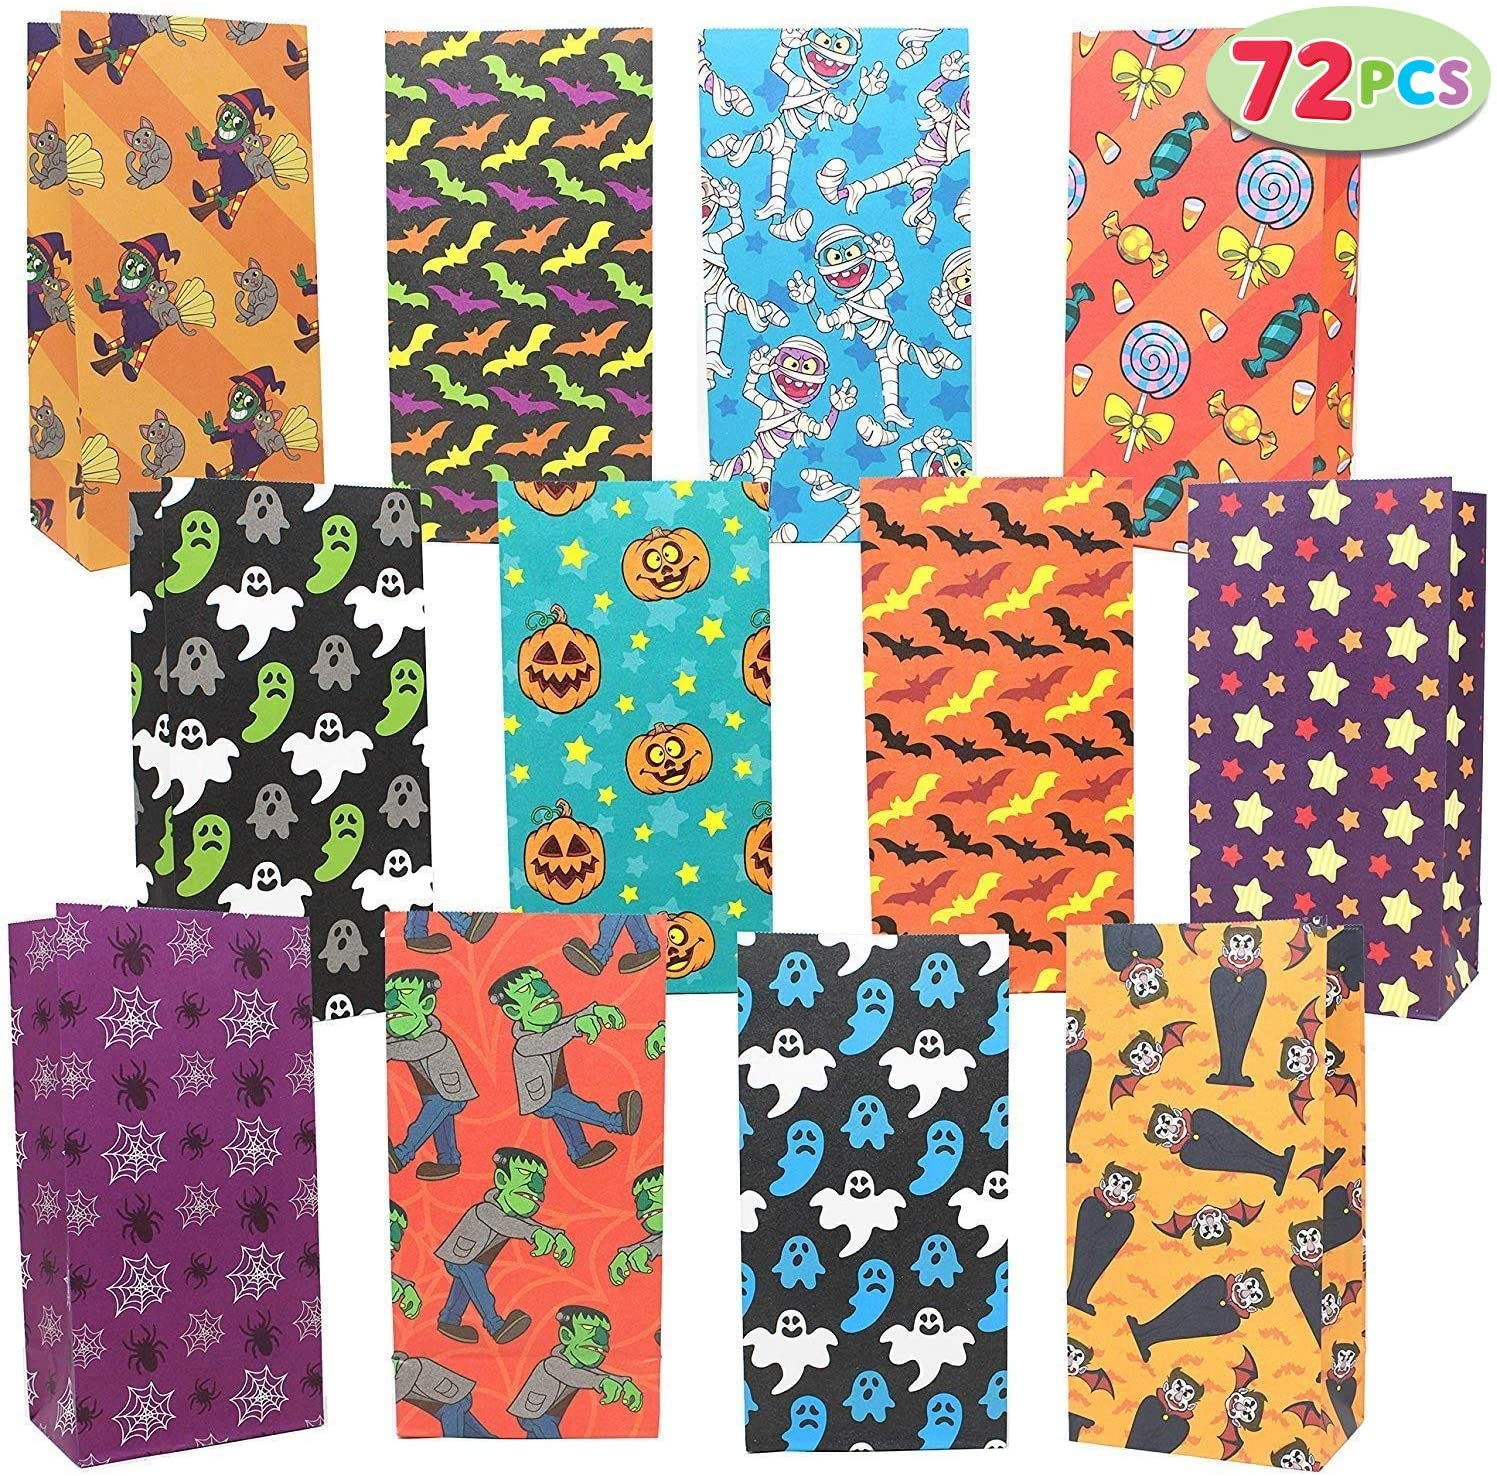 JOYIN 72 Pack of Halloween Bags; 12 Assorted Designs Paper Treat Bags for Classroom Treat Bags Halloween Party Favors, Trick or Treating Candy Bags, Goodie Bags